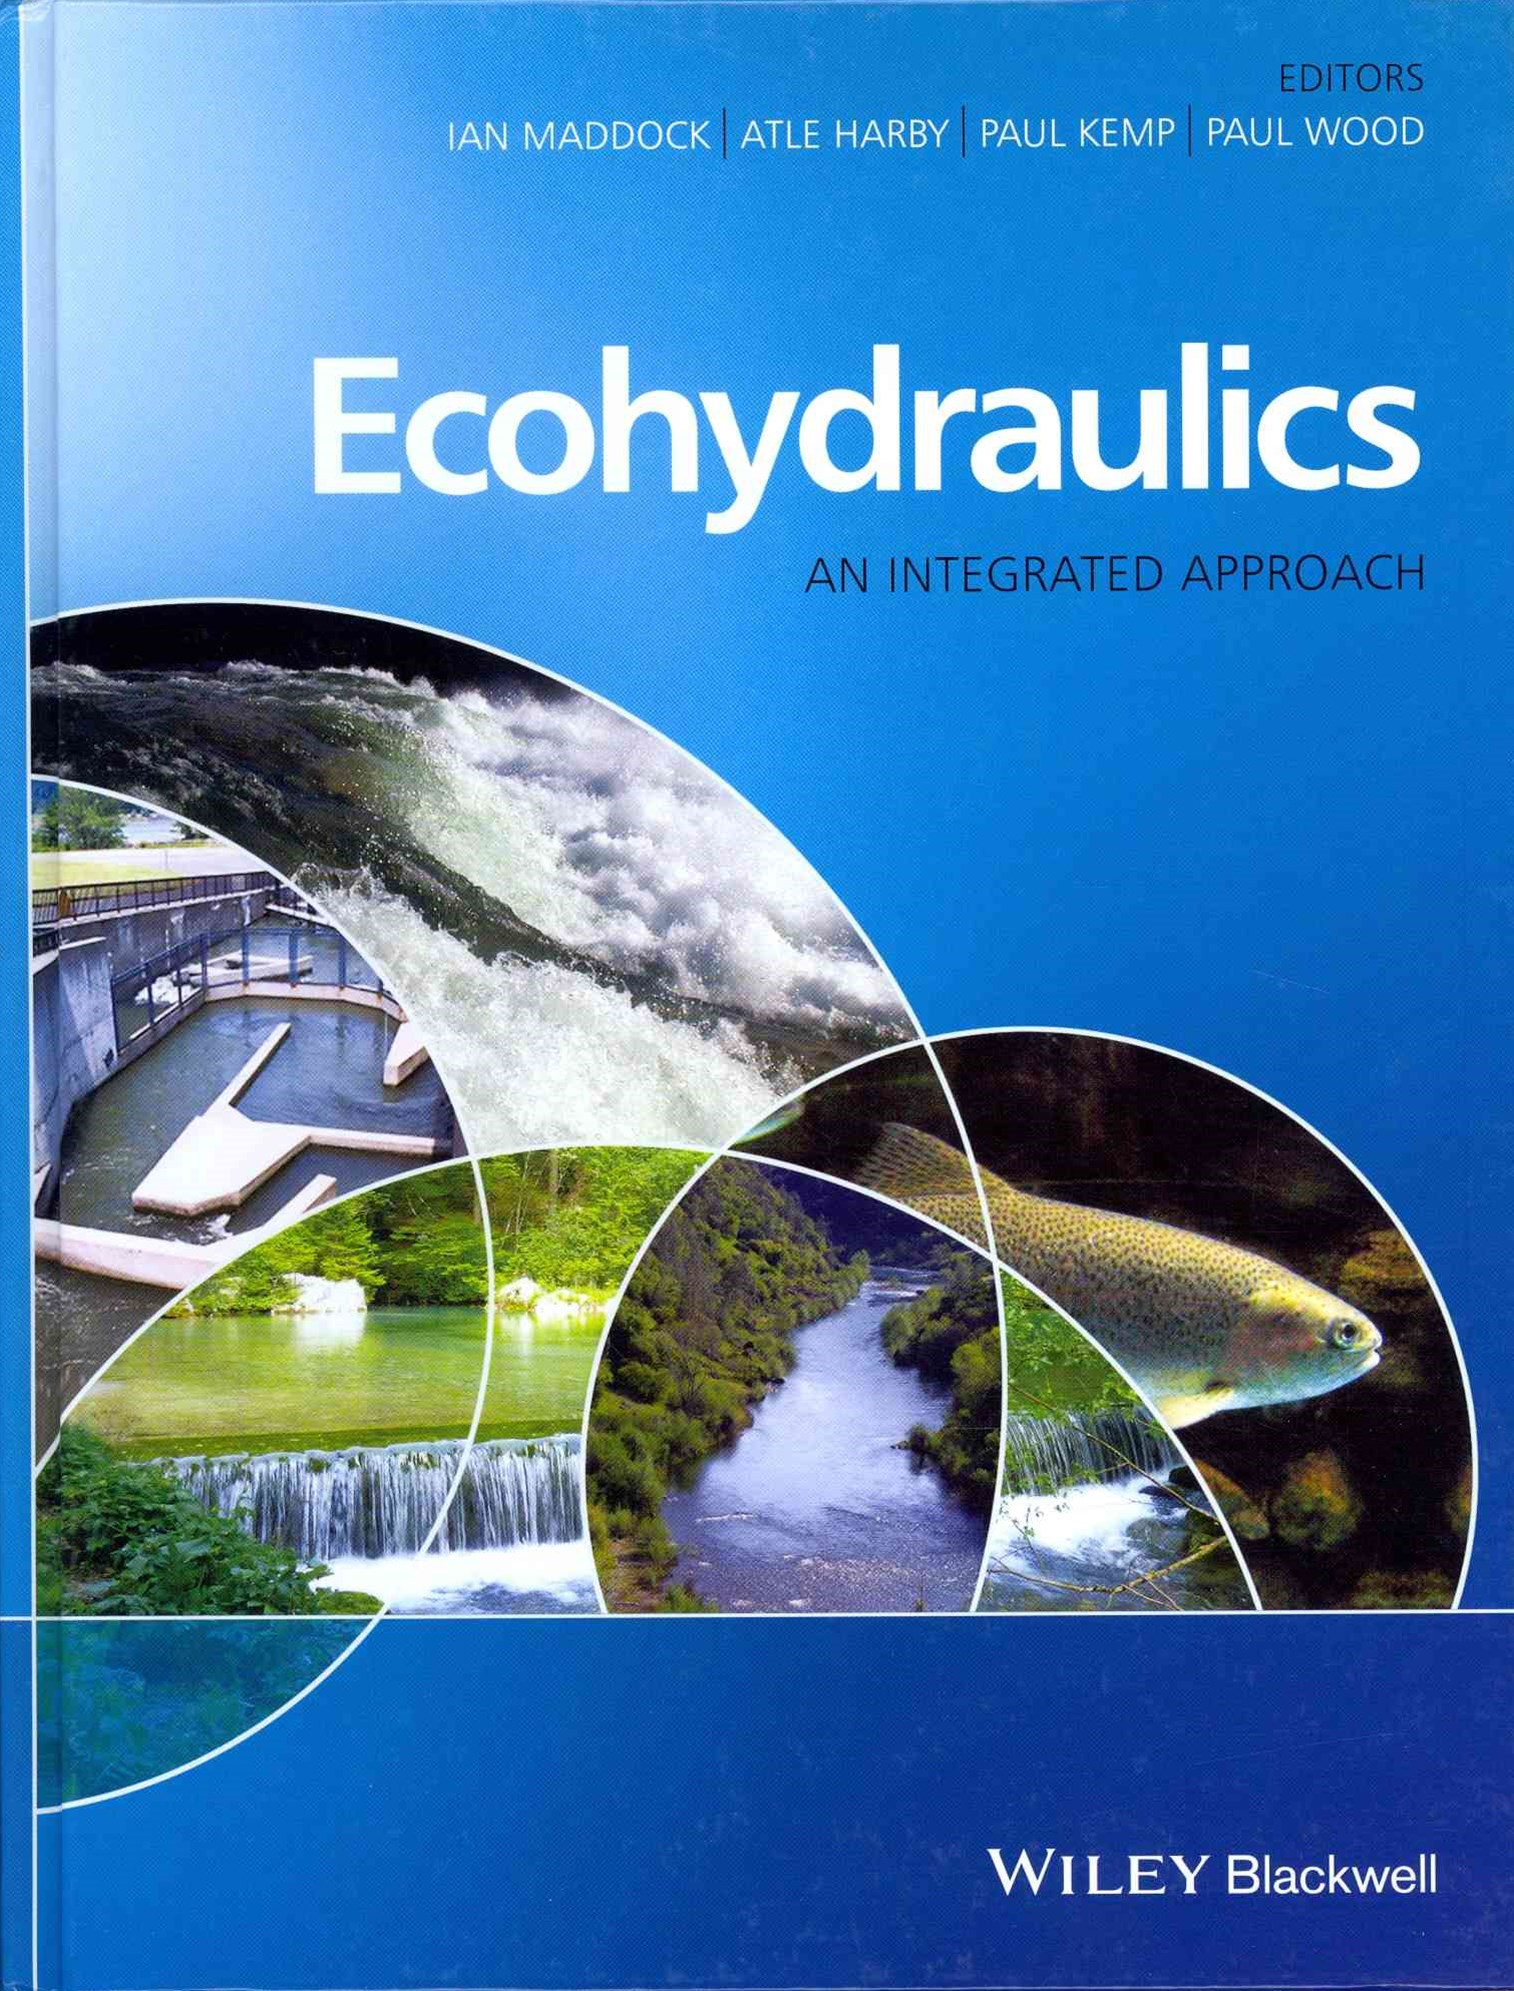 Ecohydraulics - an Integrated Approach